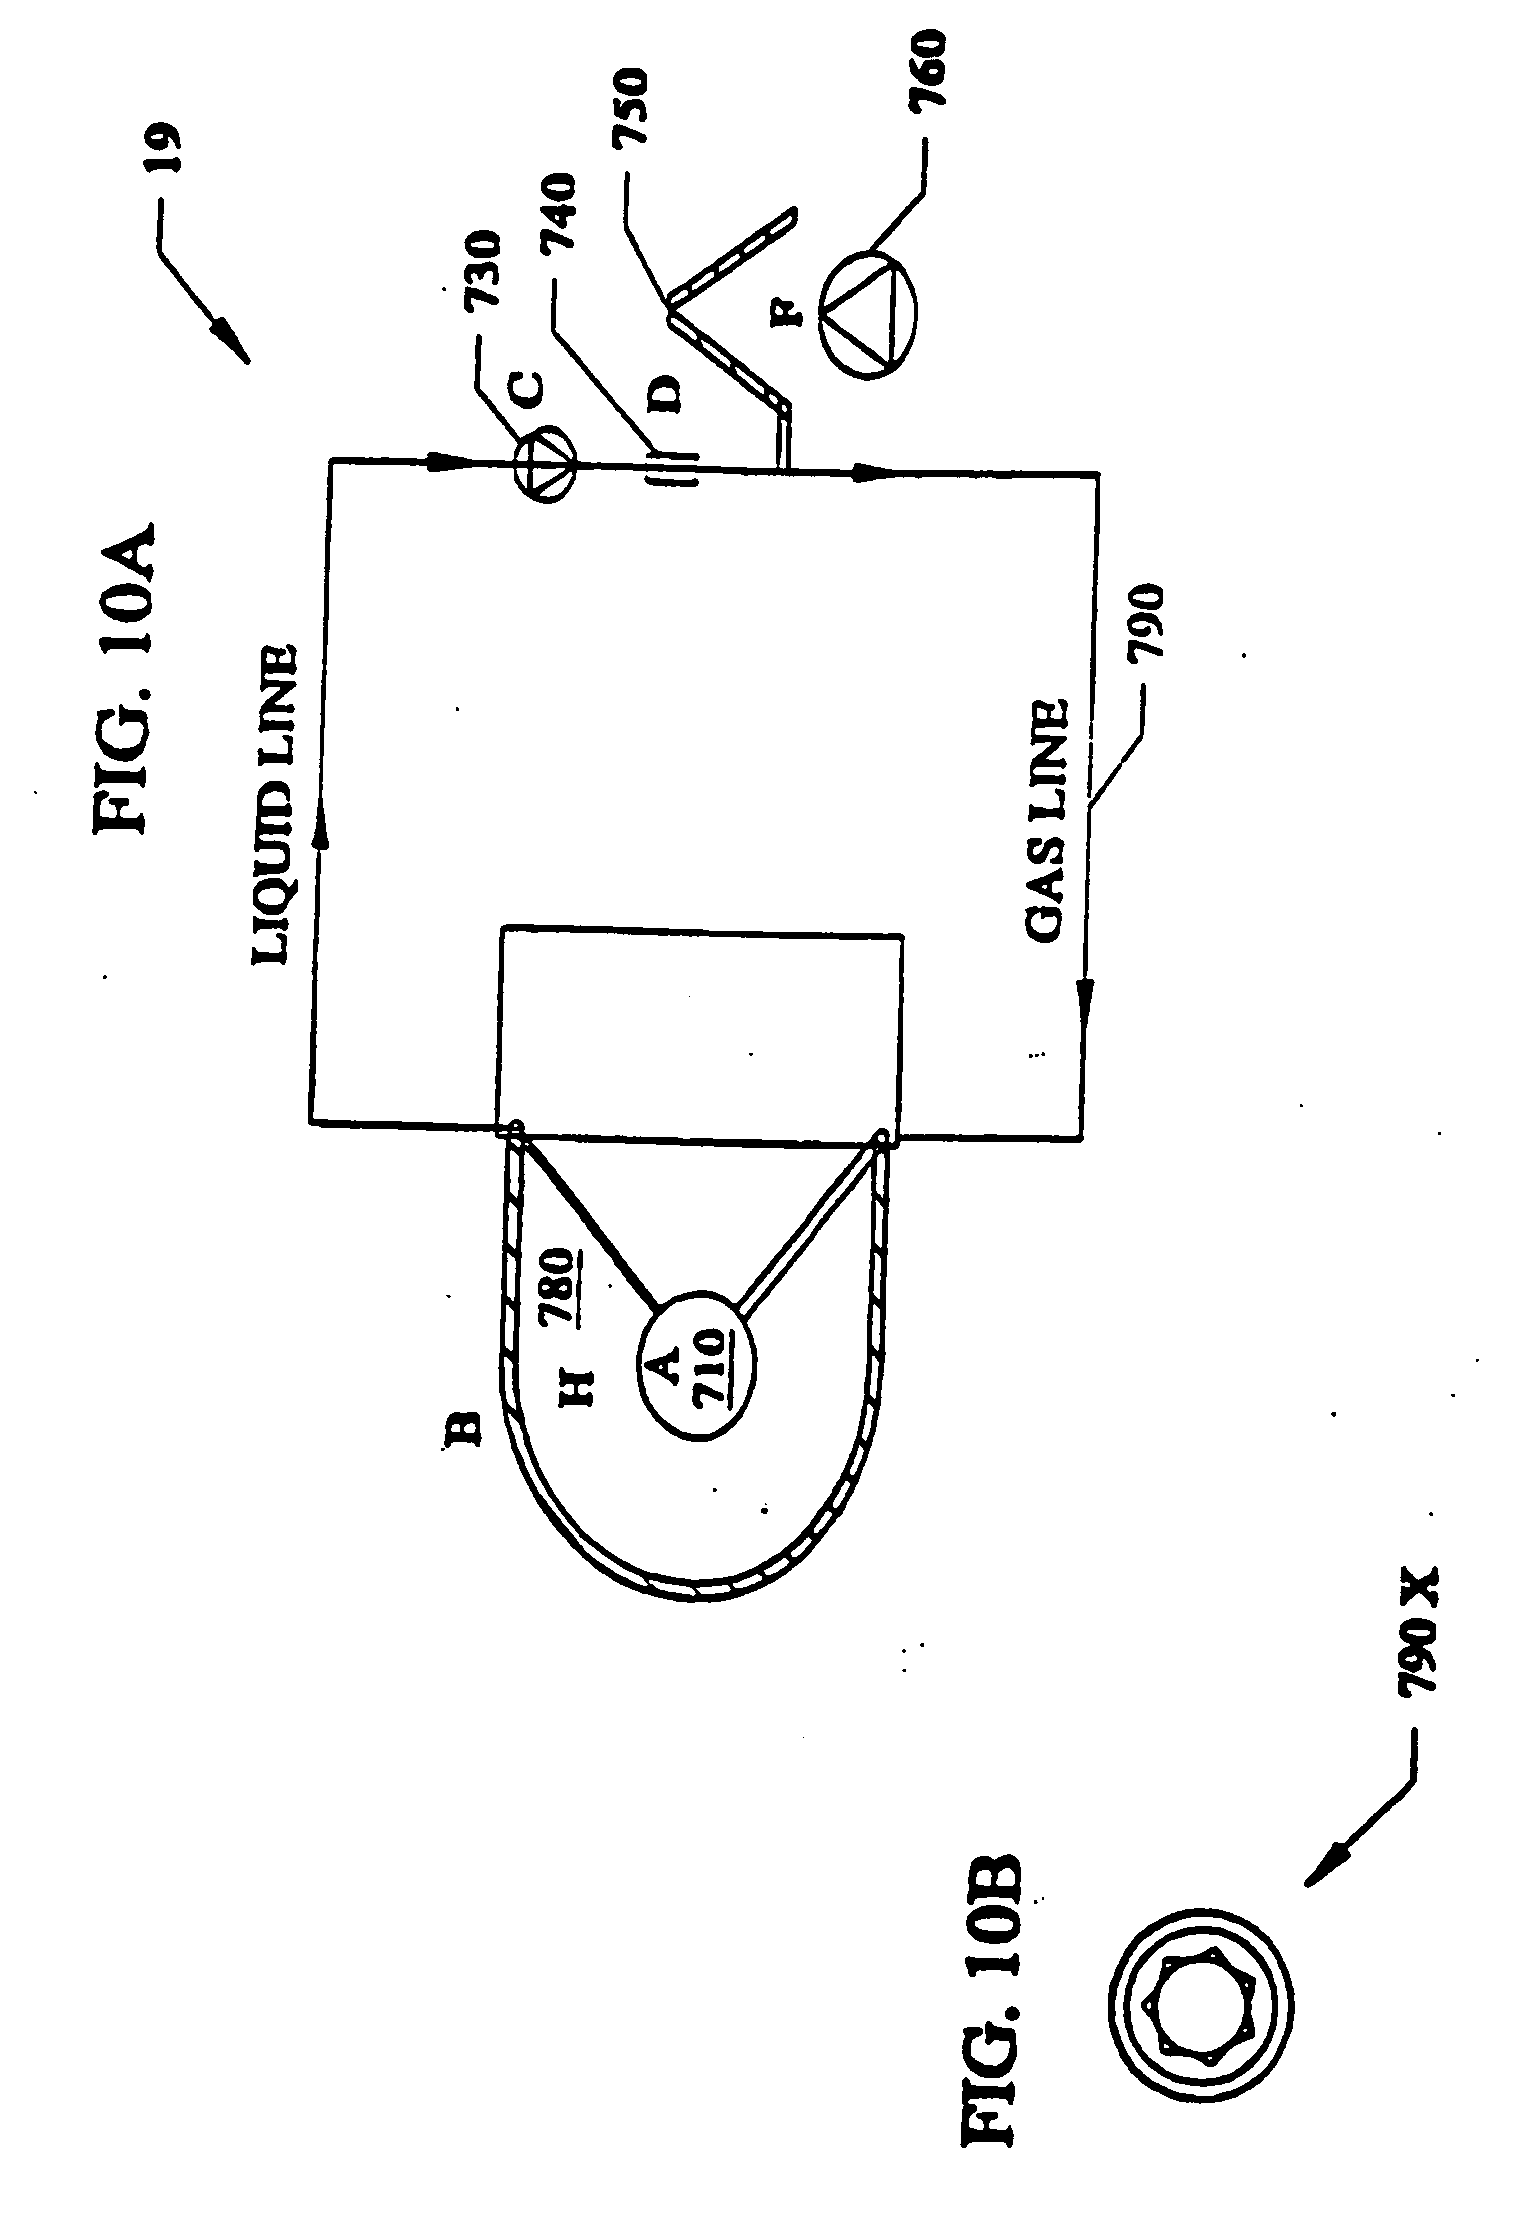 patent us20060186669 power generation methods and systems patent drawing